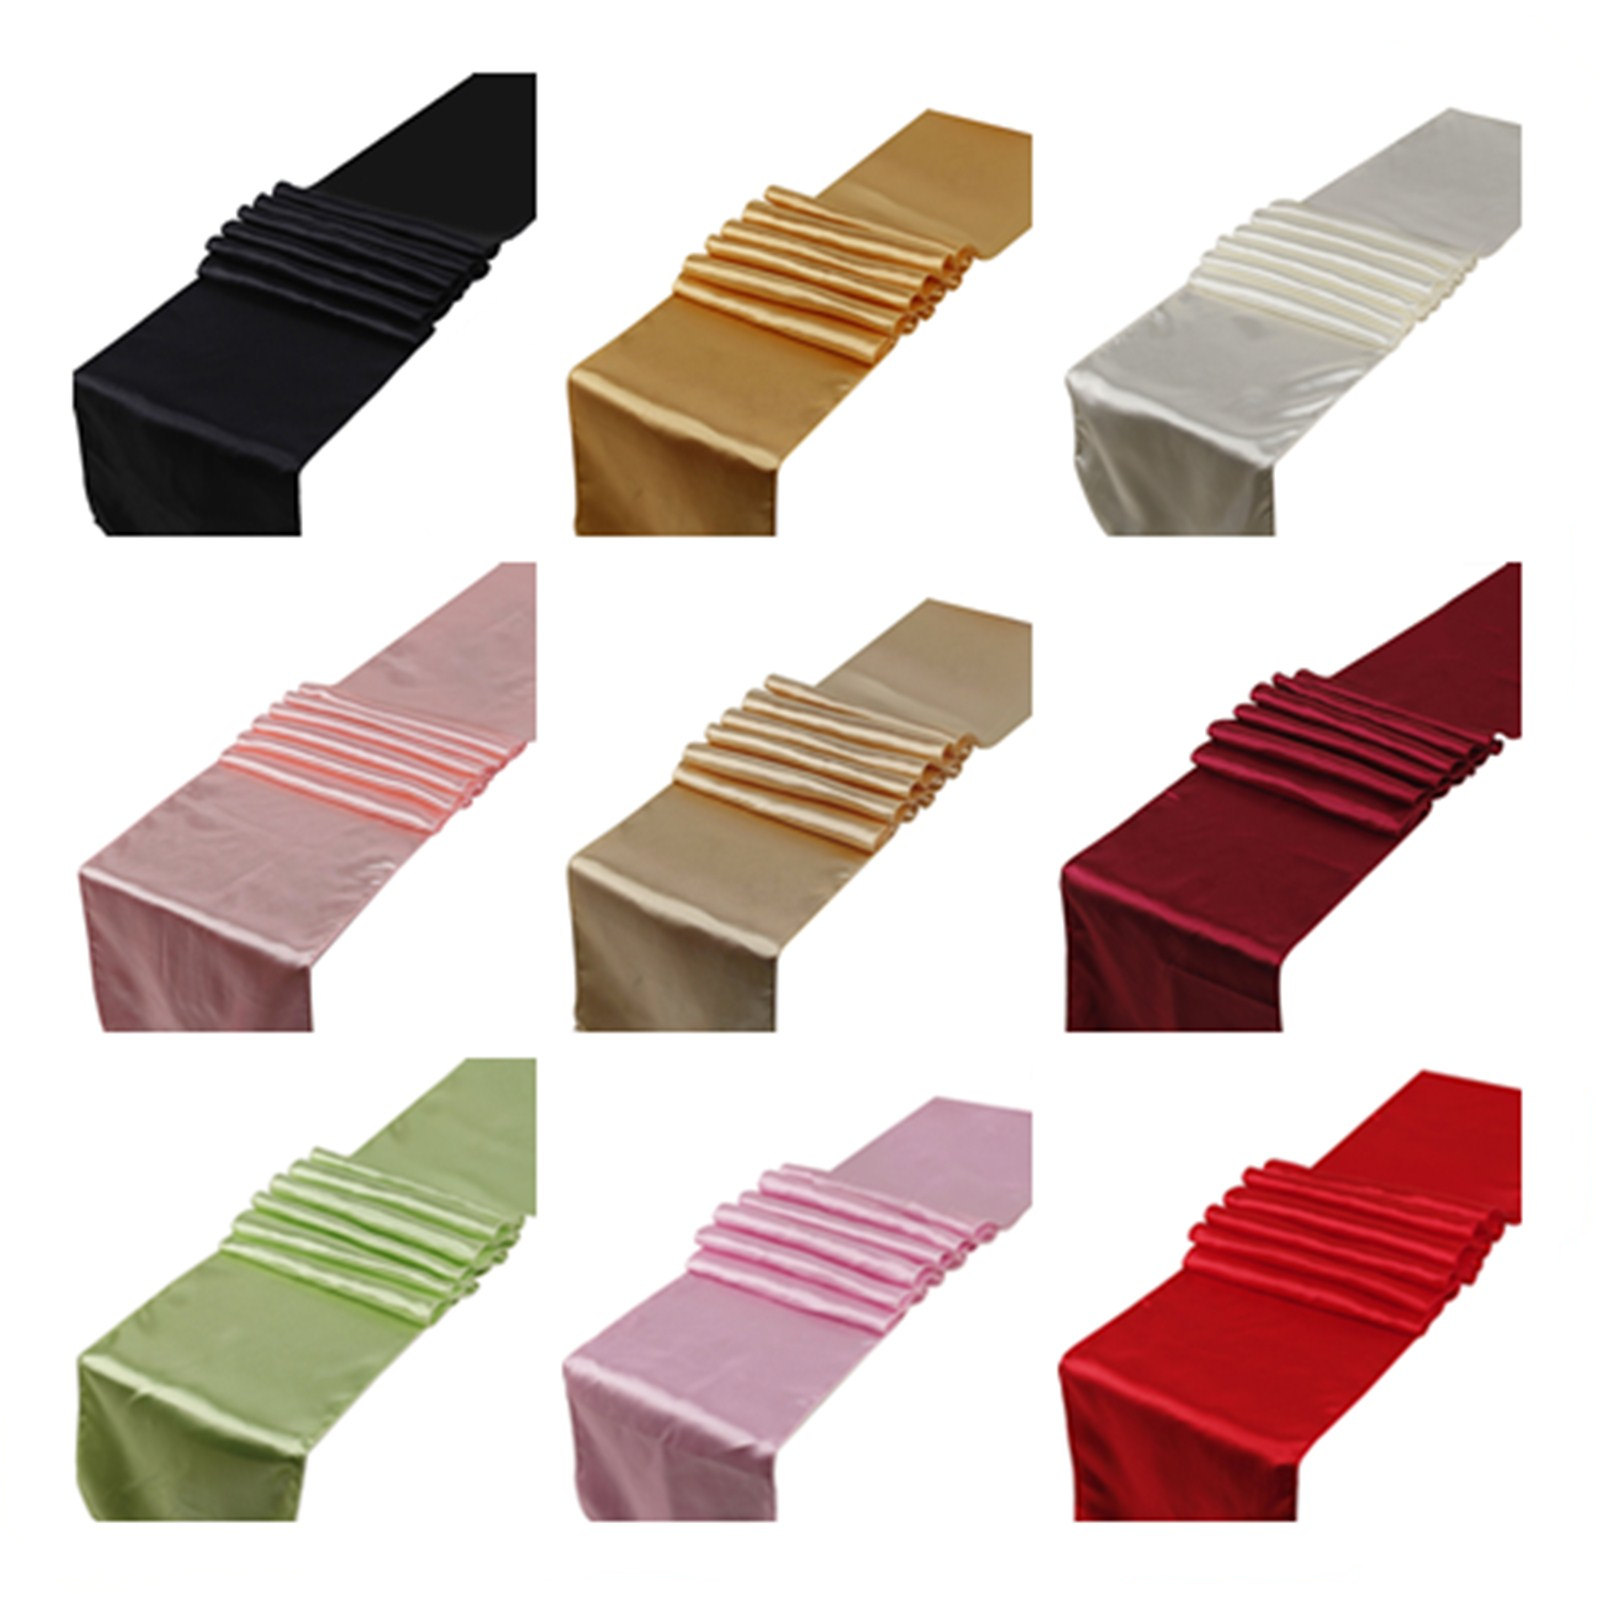 15PCS Satin Table Runners Wedding Party Event Home Decor Supply Satin Fabric Chair Sash Bow Table Cover Tablecloth 30cm*275cm